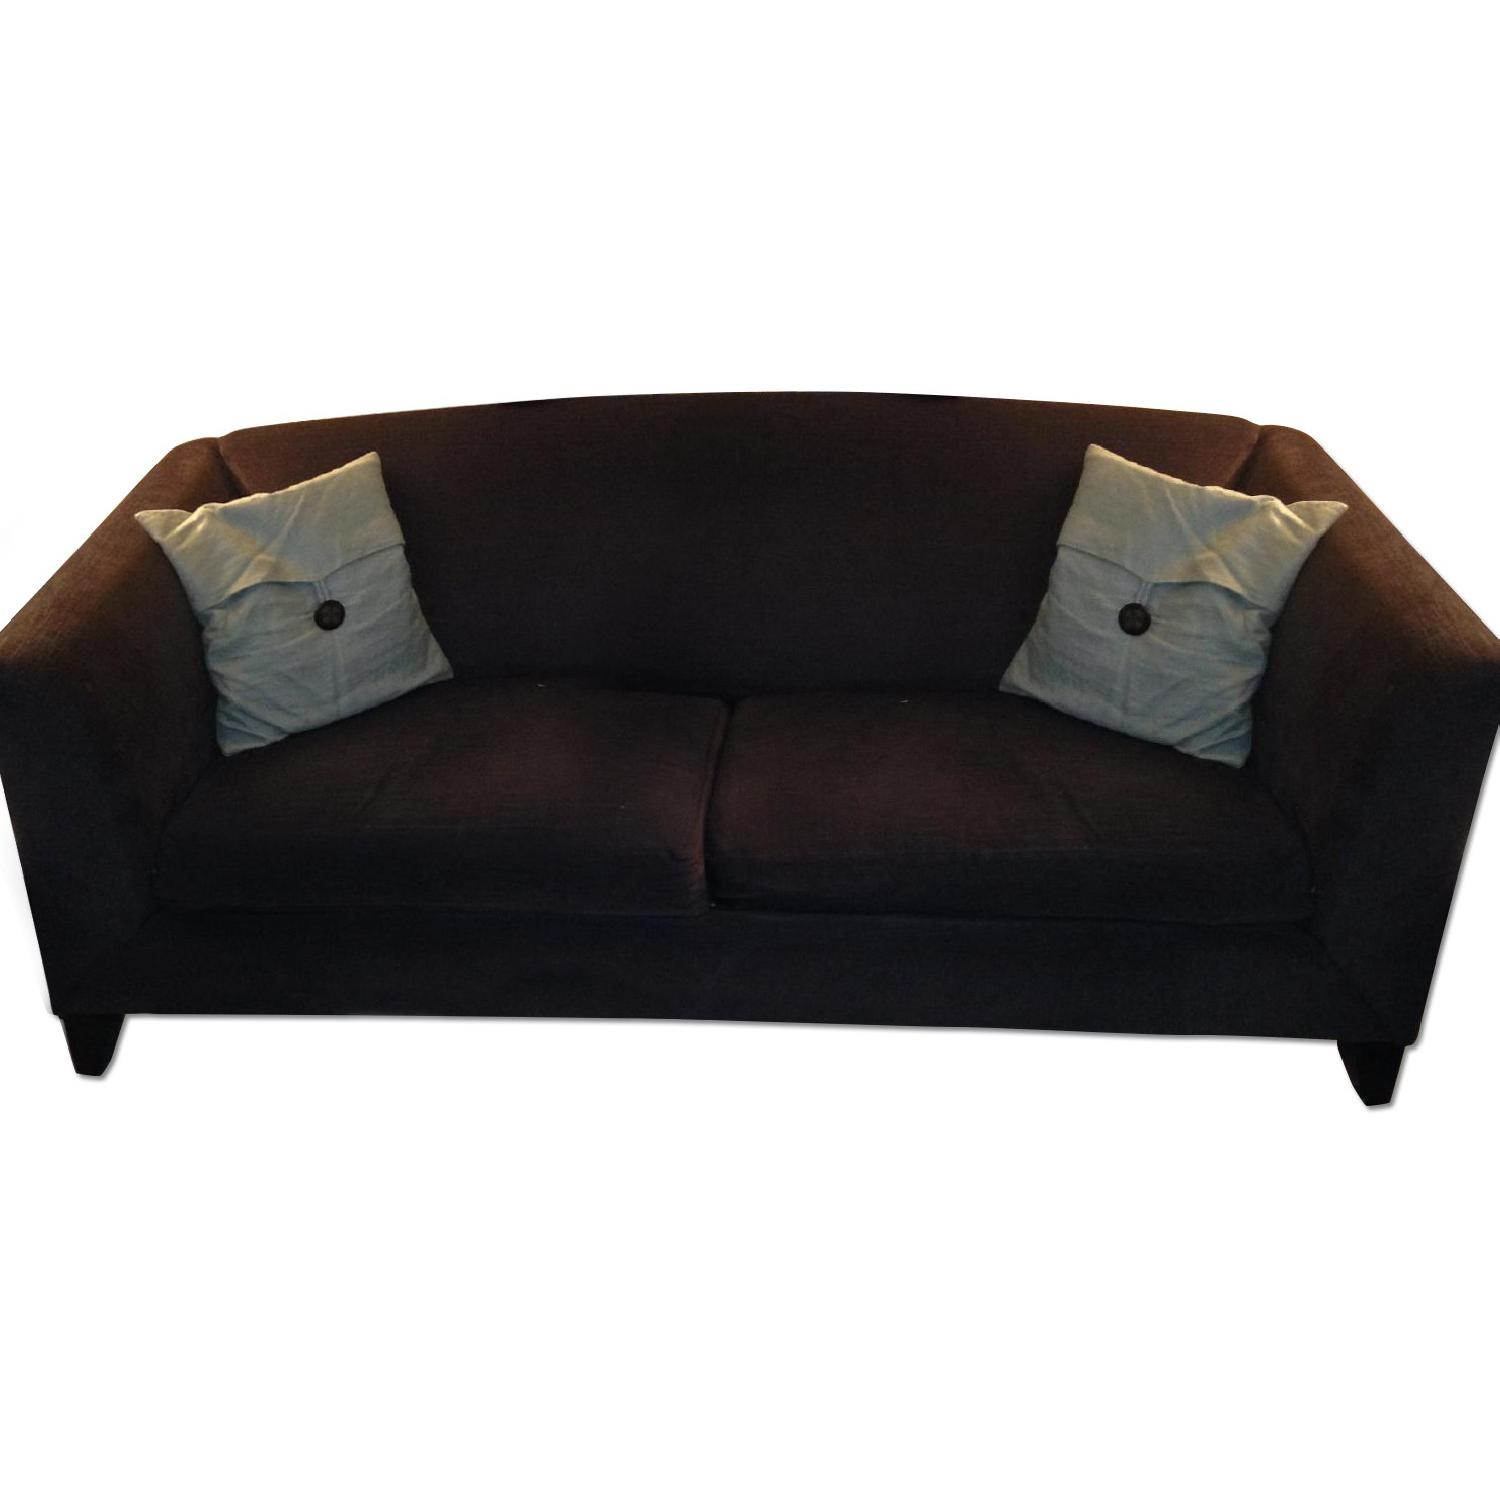 Used sofas for sale in nyc aptdeco for Gray sofas for sale